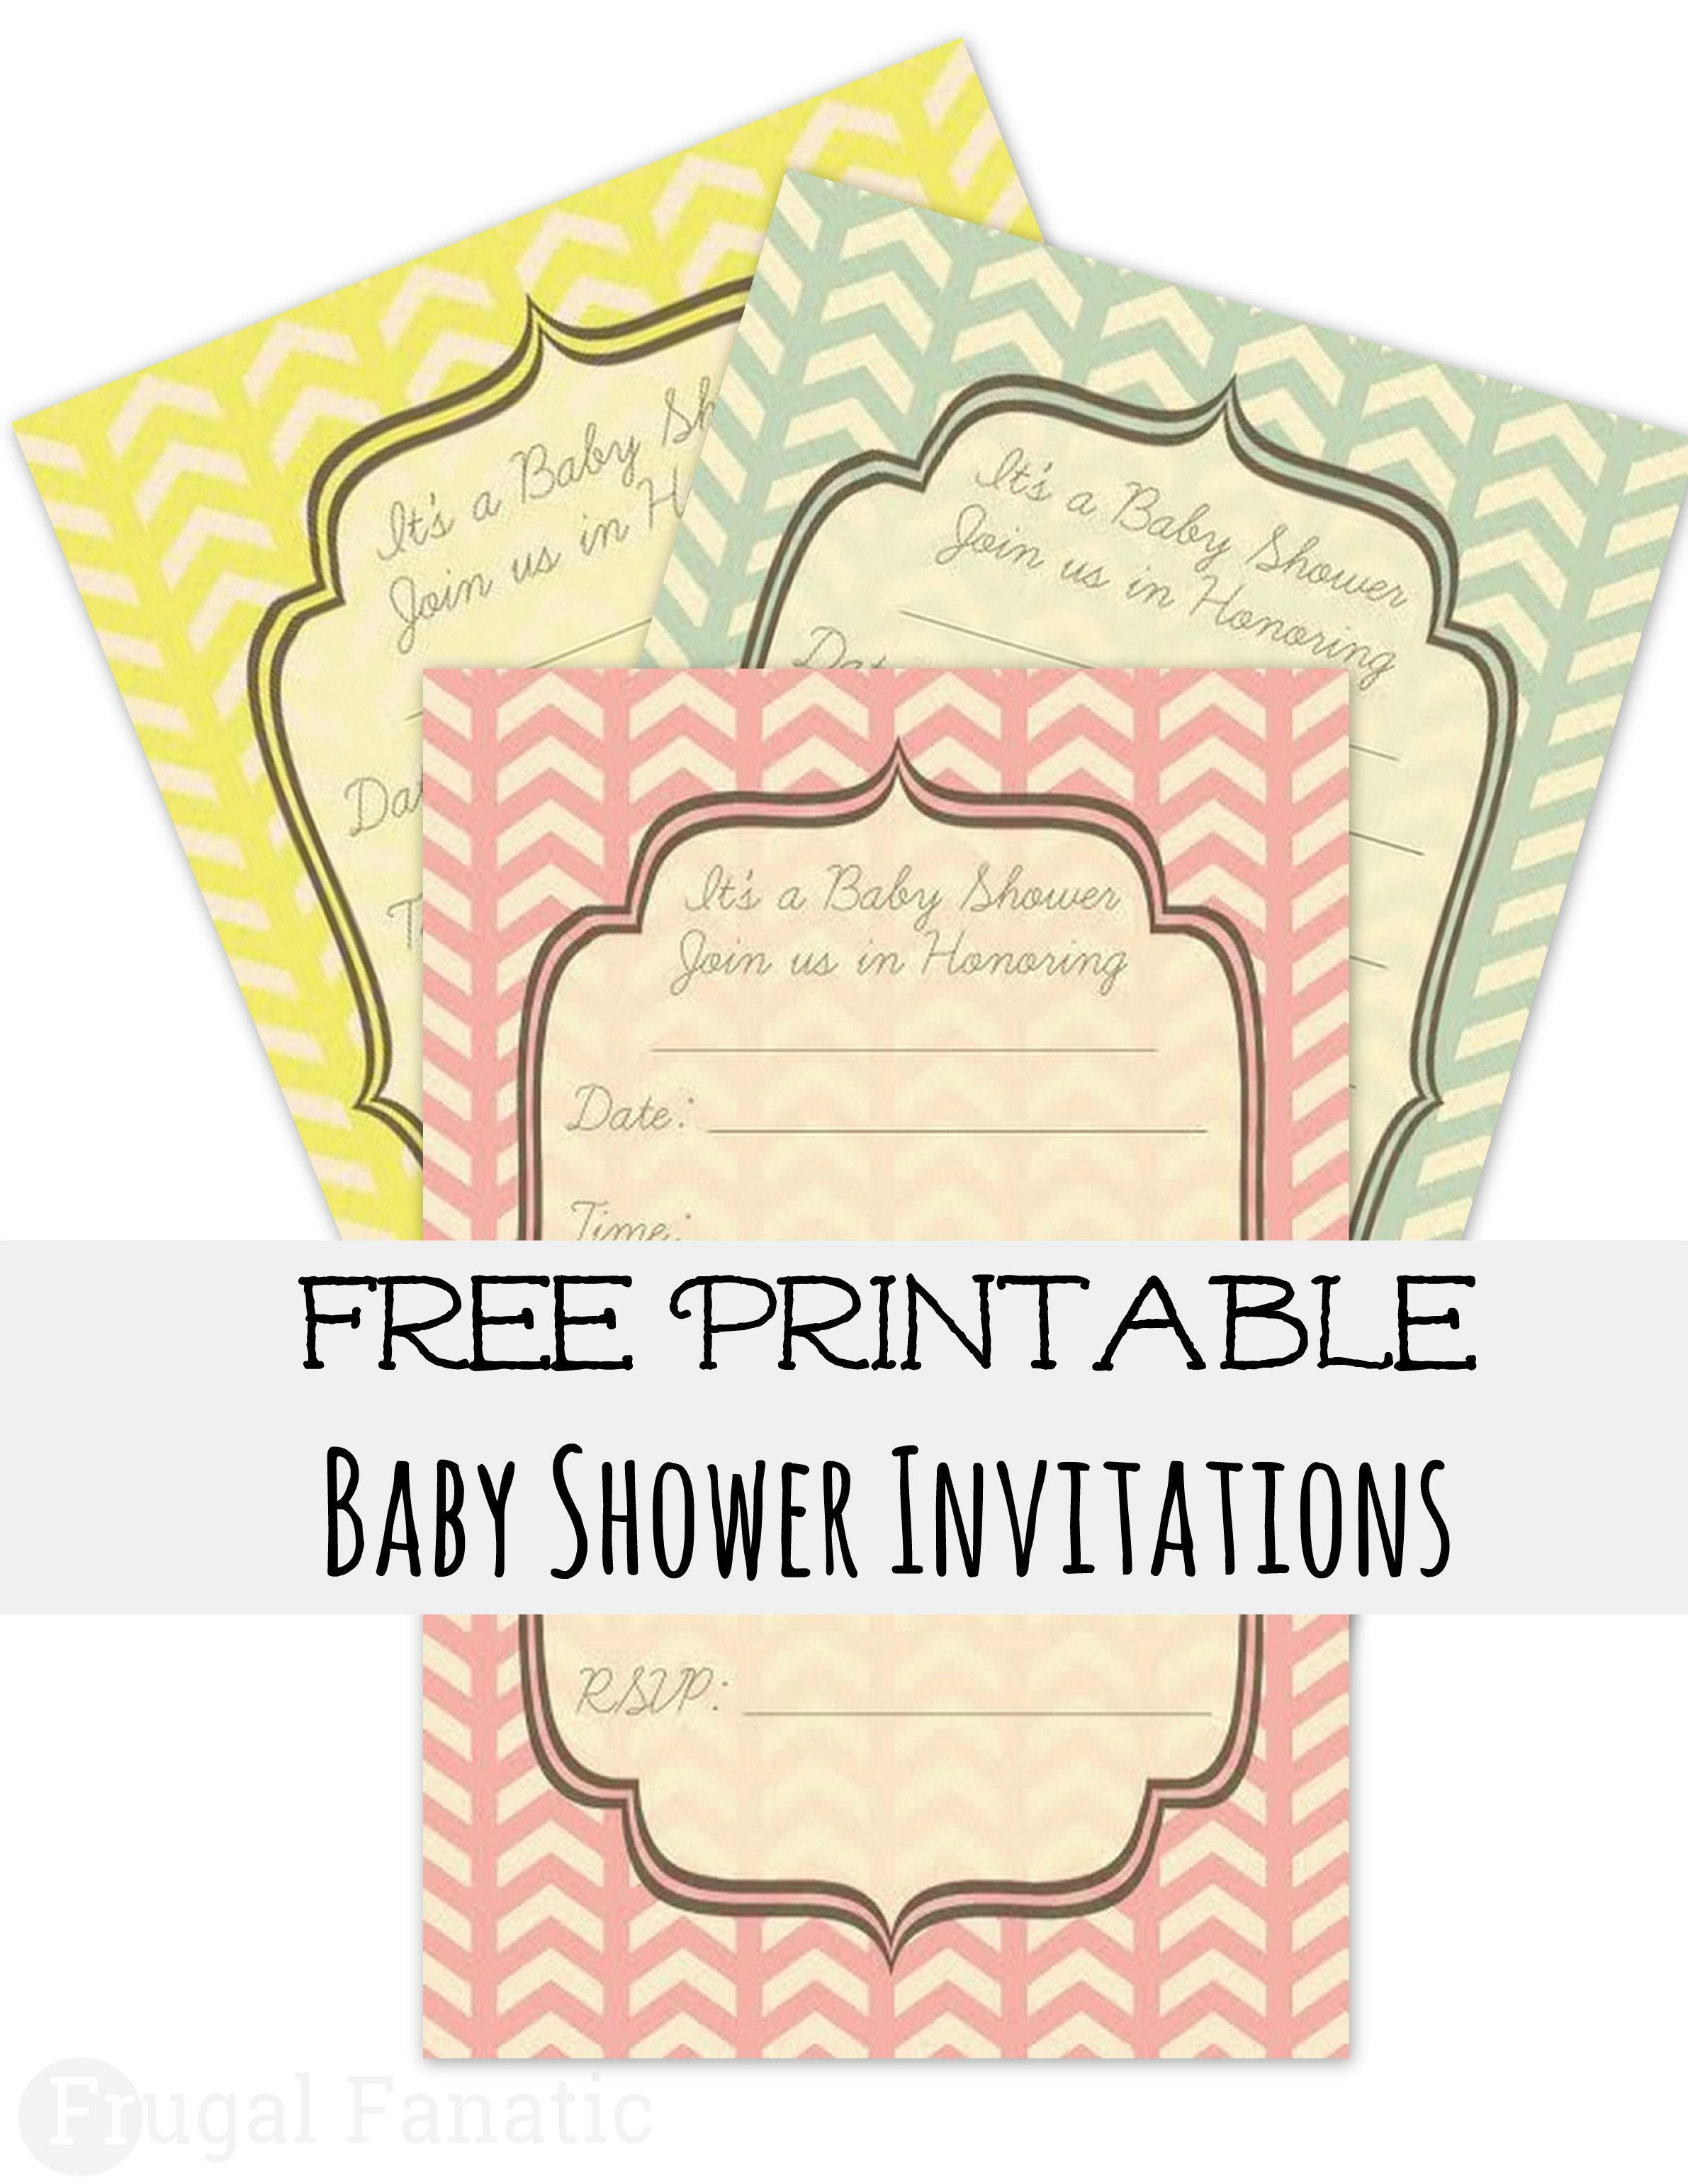 Baby Shower Invitation Free Baby Shower Invitation Template